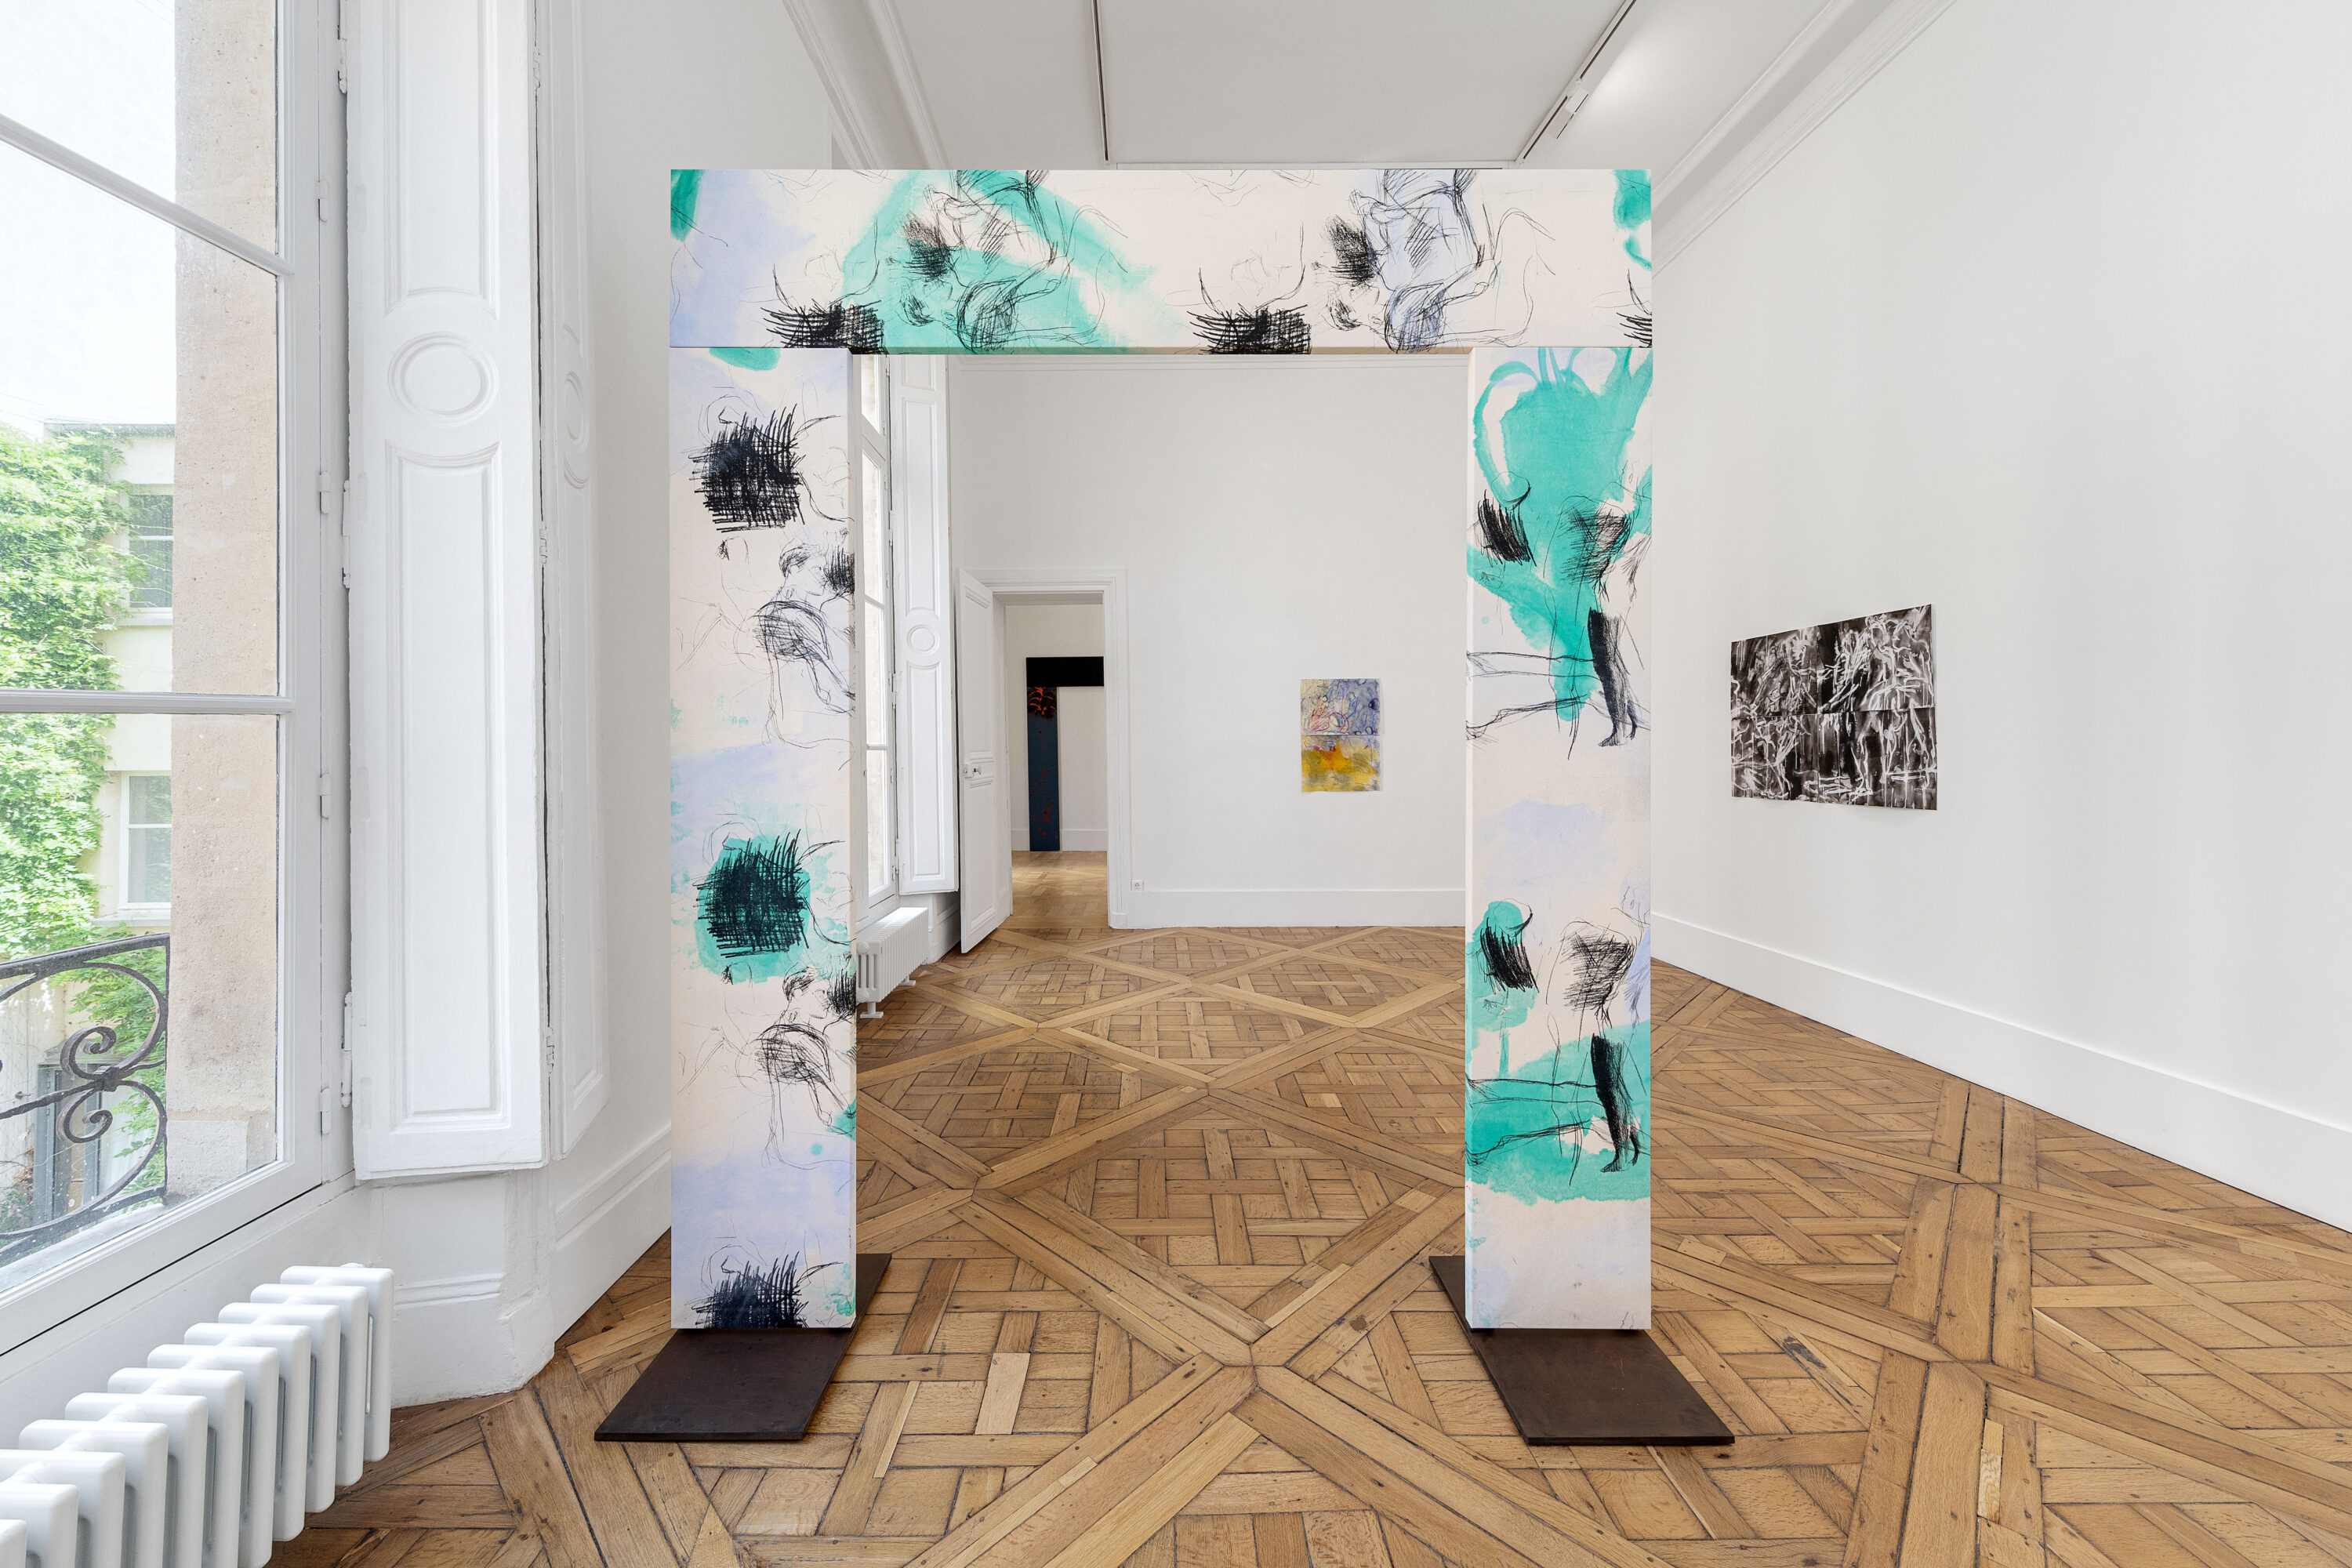 Image of Solo Exhibition